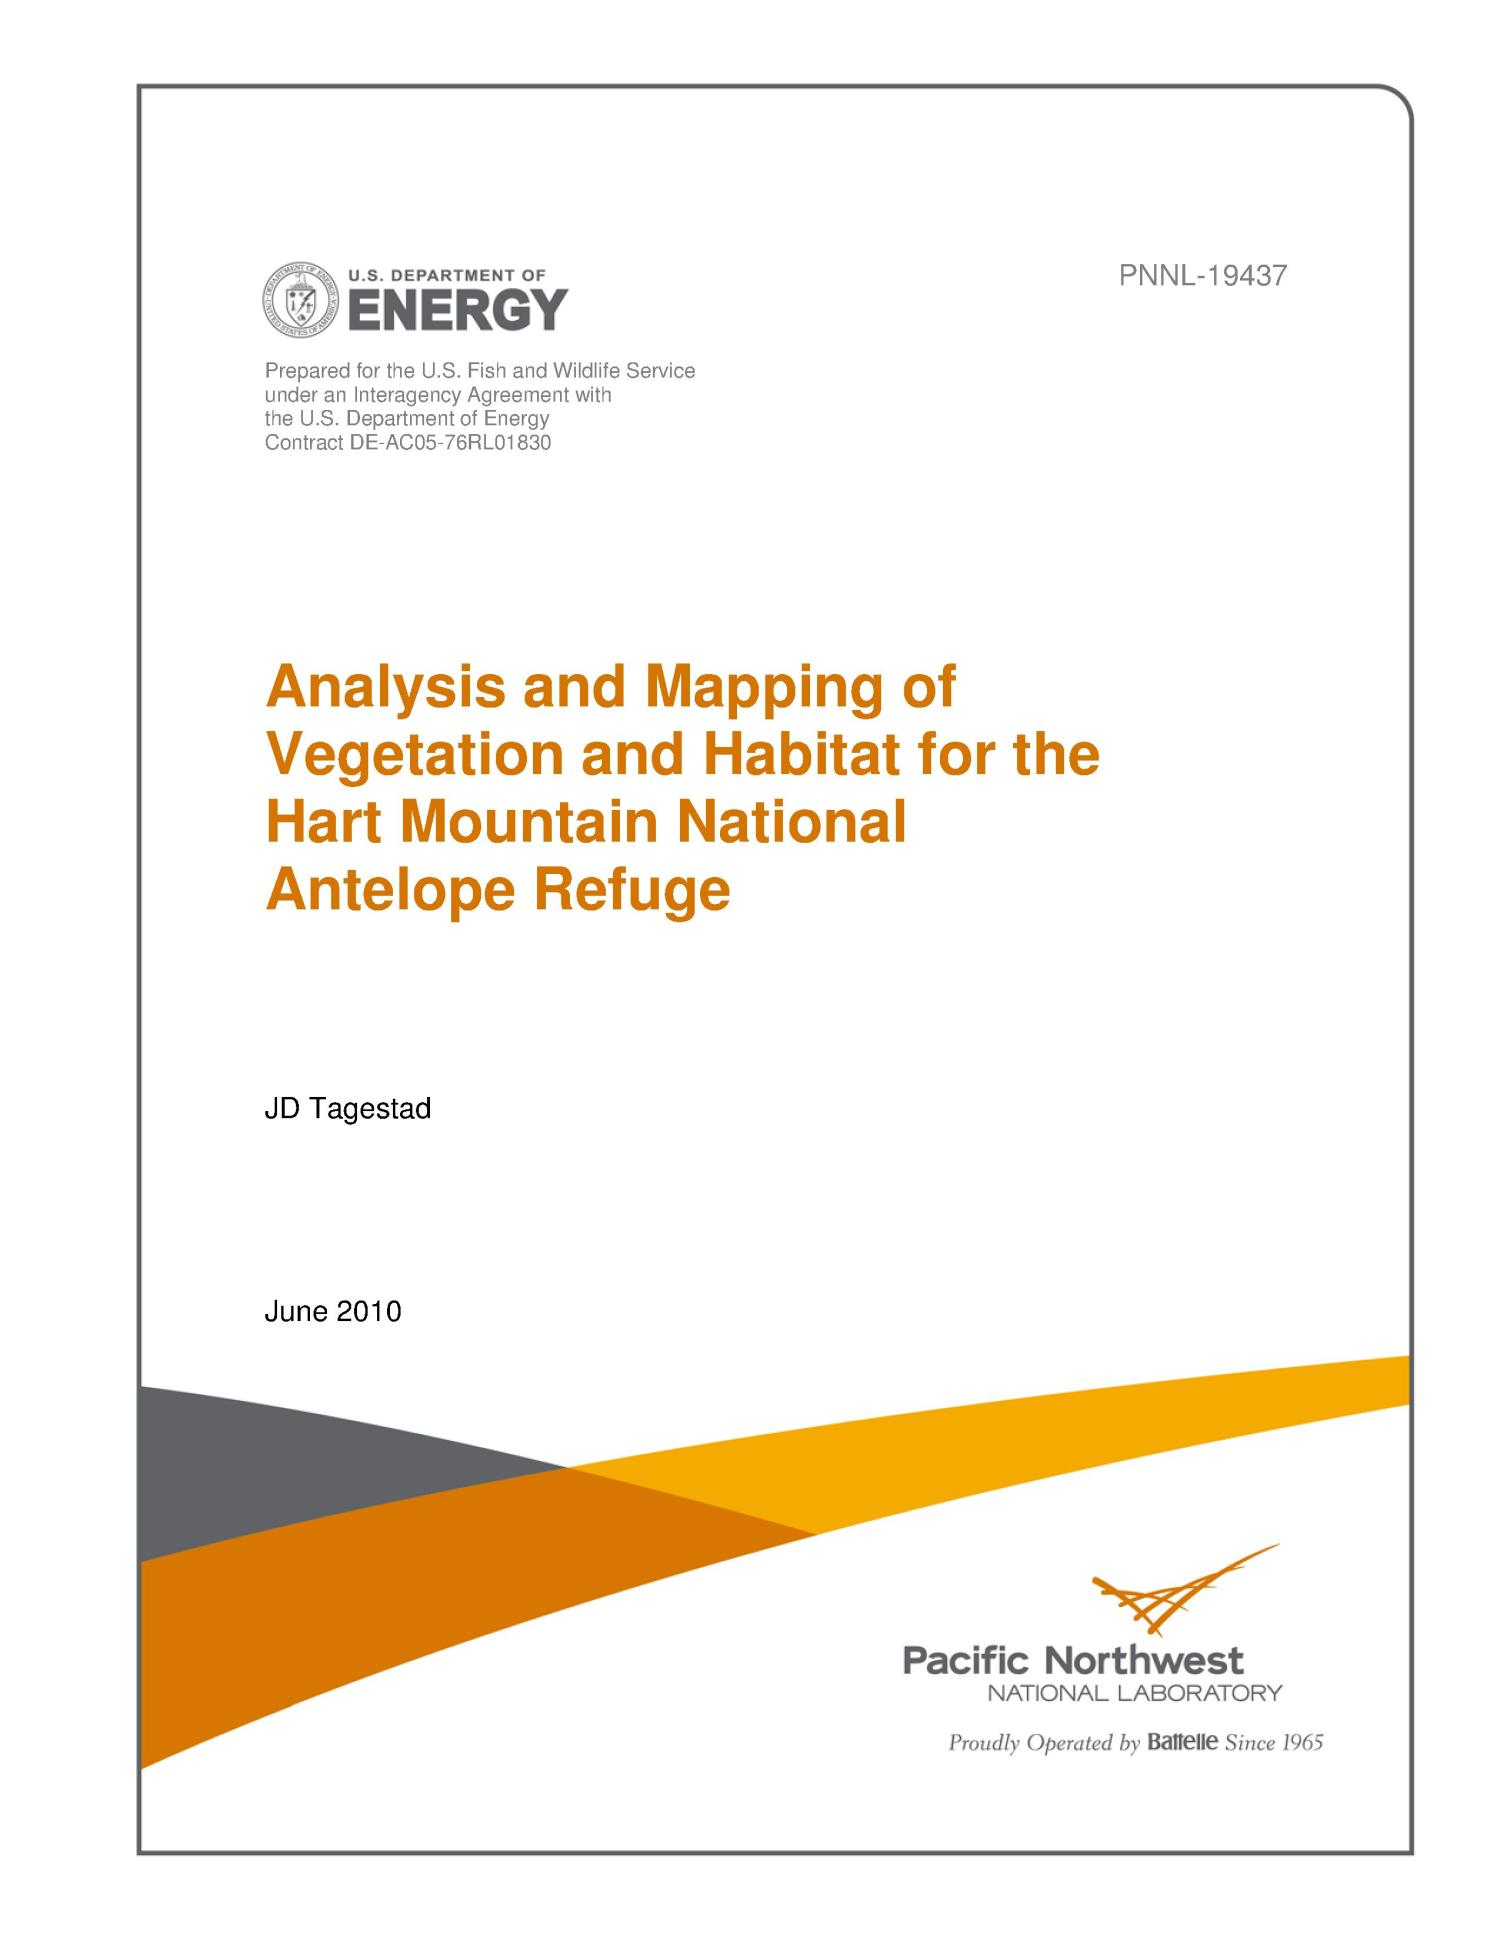 Analysis and Mapping of Vegetation and Habitat for the Hart Mountain National Antelope Refuge                                                                                                      [Sequence #]: 1 of 20